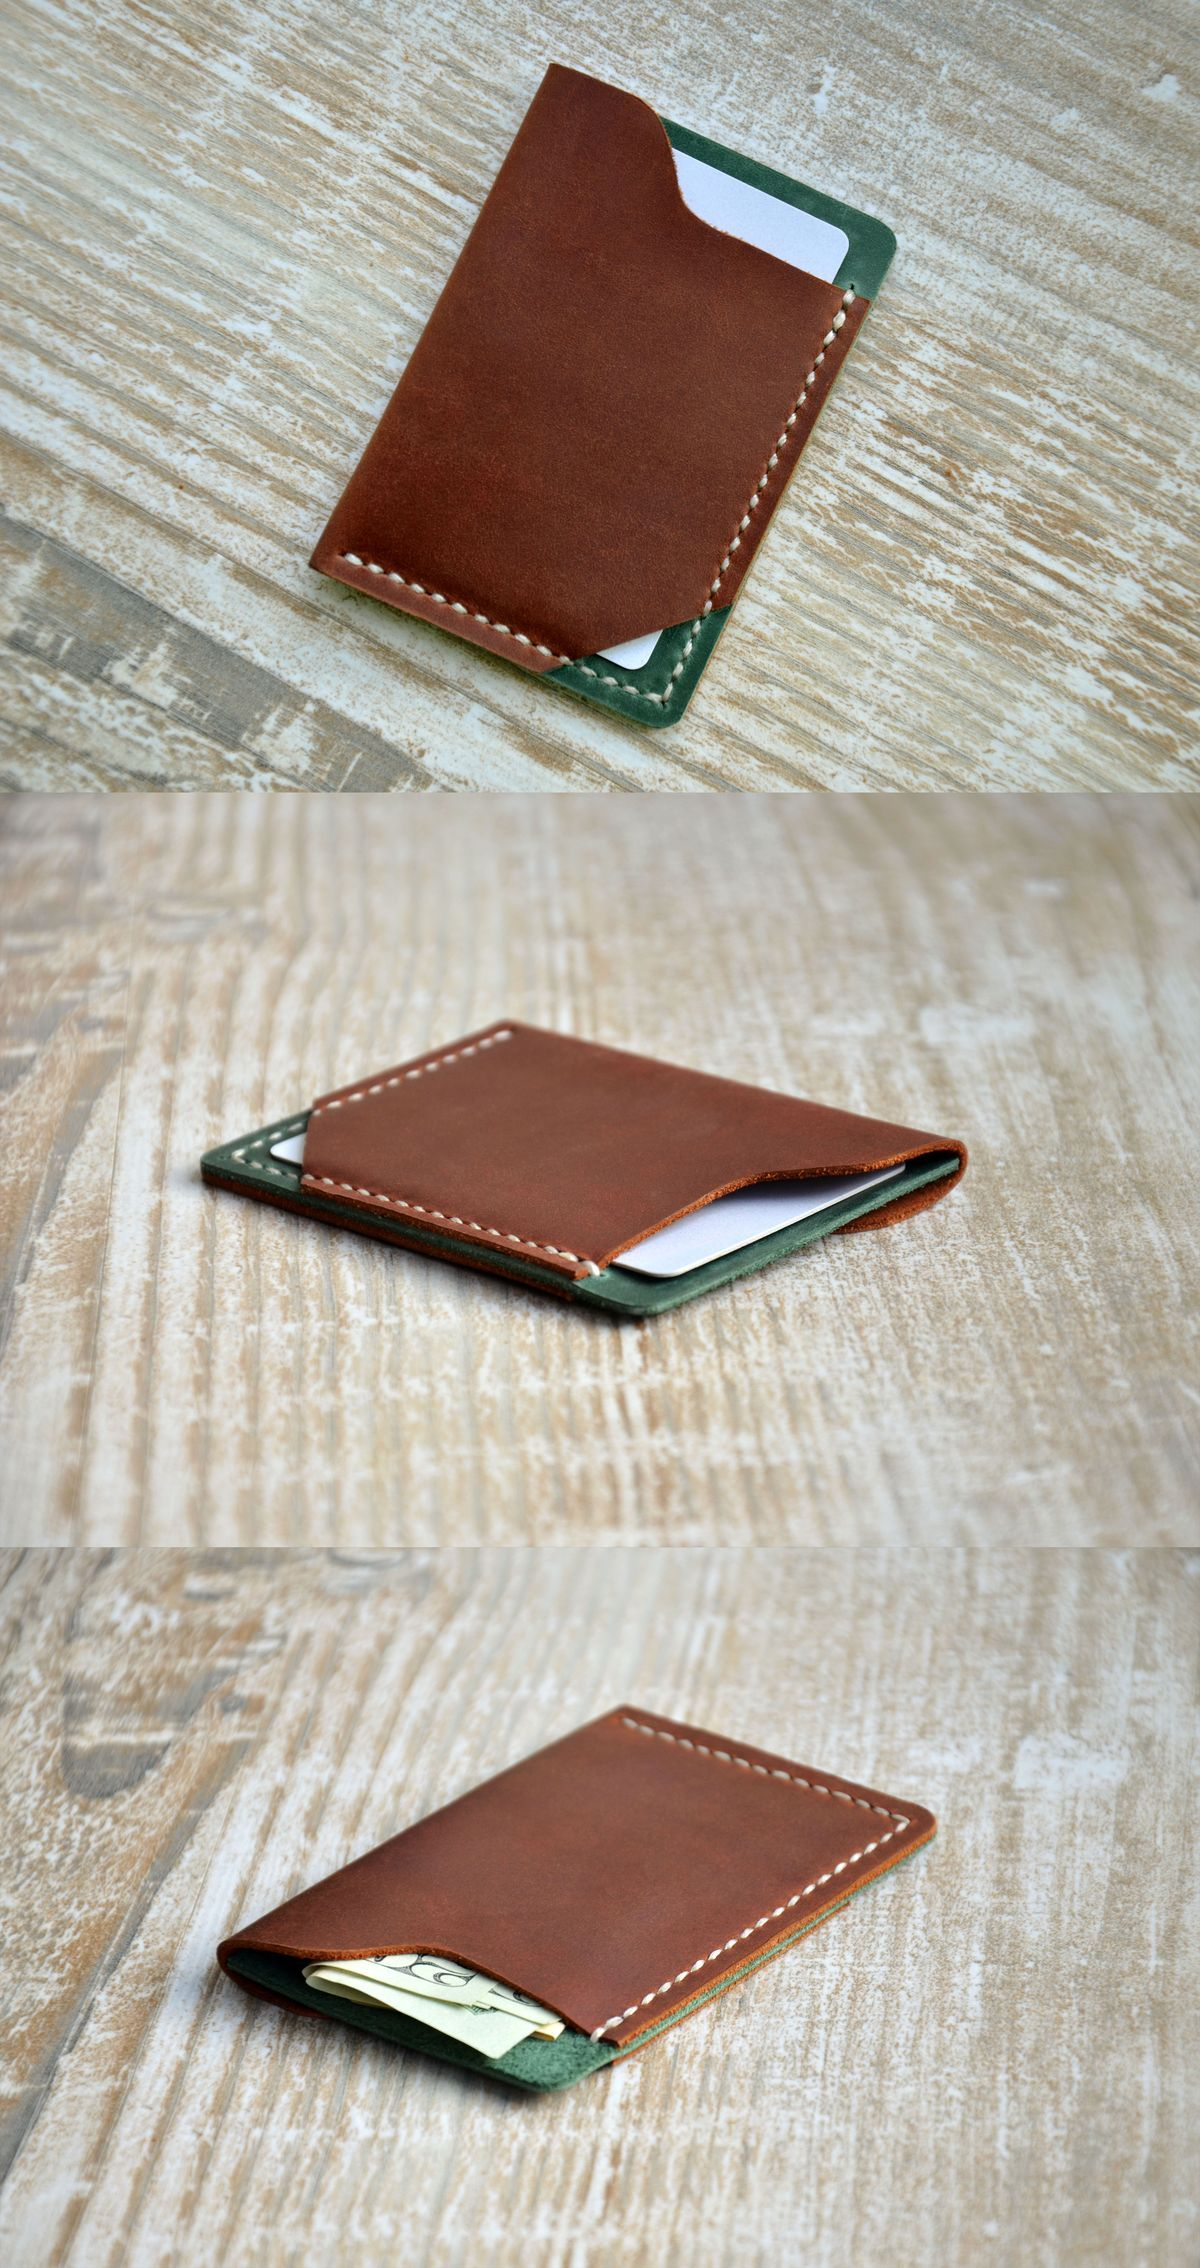 #wallet #leather #mens #card Mens Custom Leather Wallet , Slim Mens Wallets, Gifts for Men, Minimalist Gift Ideas, wallets for men, leather wallets,mens wallet, Handor If you love fashion check us out. We're always adding new products for your closet! #leatherwallets